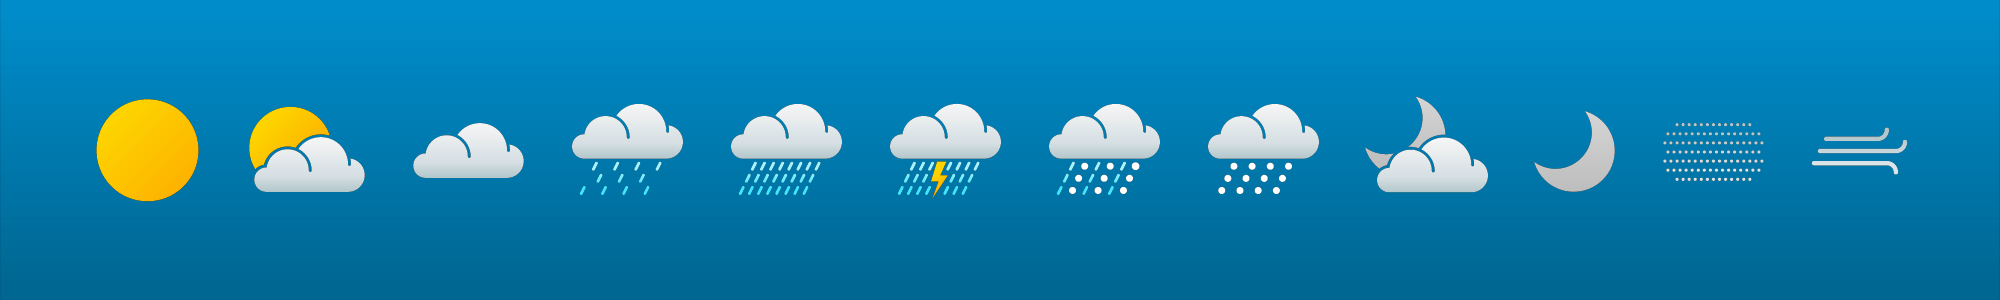 7_weather_icons2